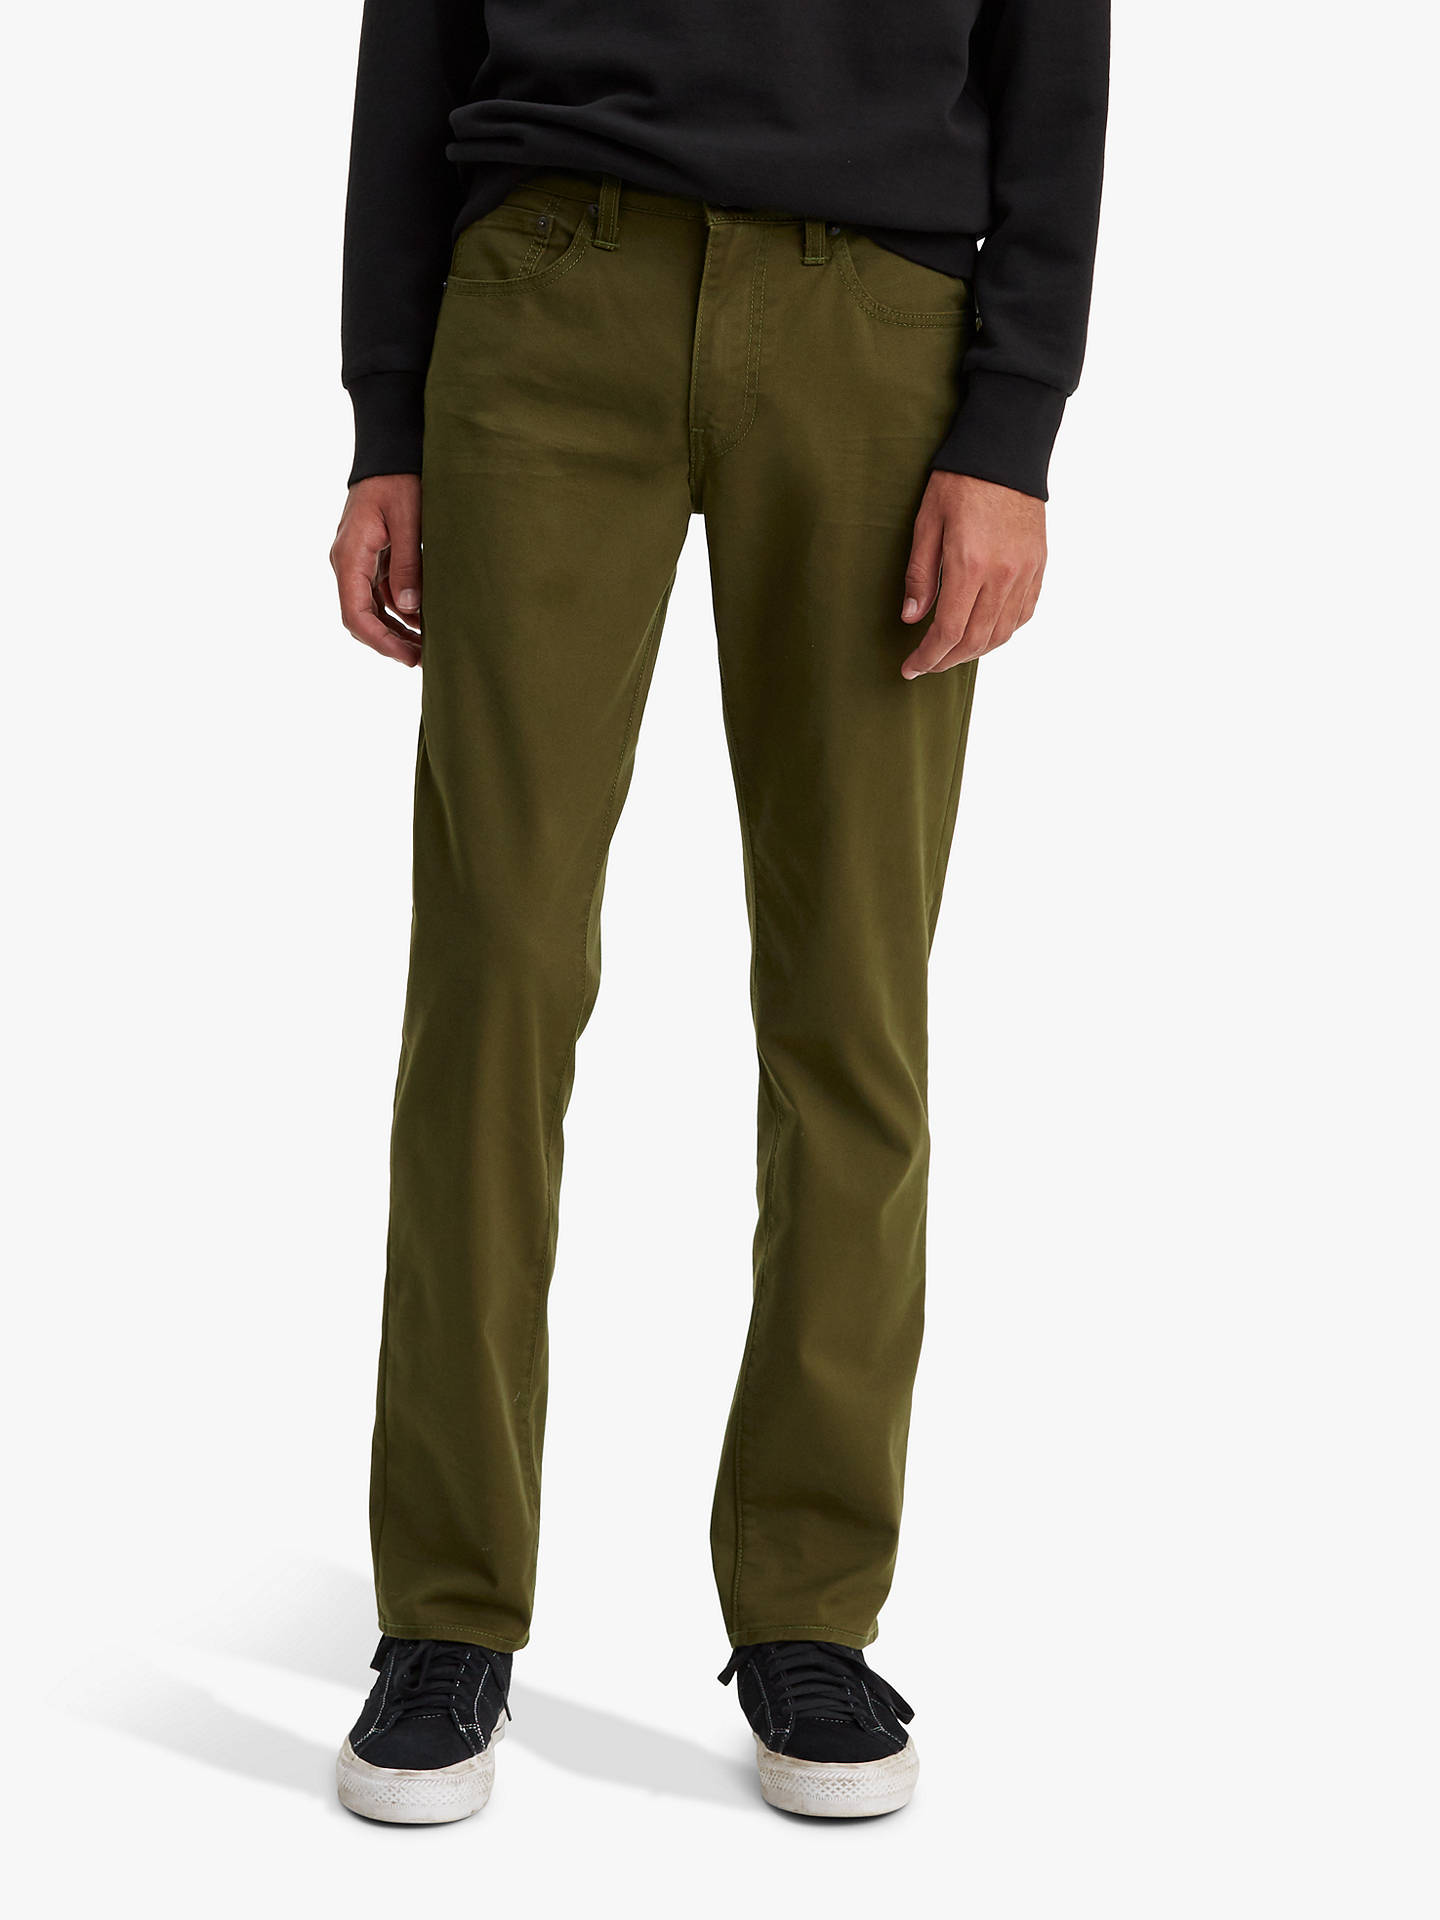 20f52d42 Buy Levi's 511 Slim Fit Bi Stretch Jeans, Foragers Green, 30R Online at  johnlewis ...